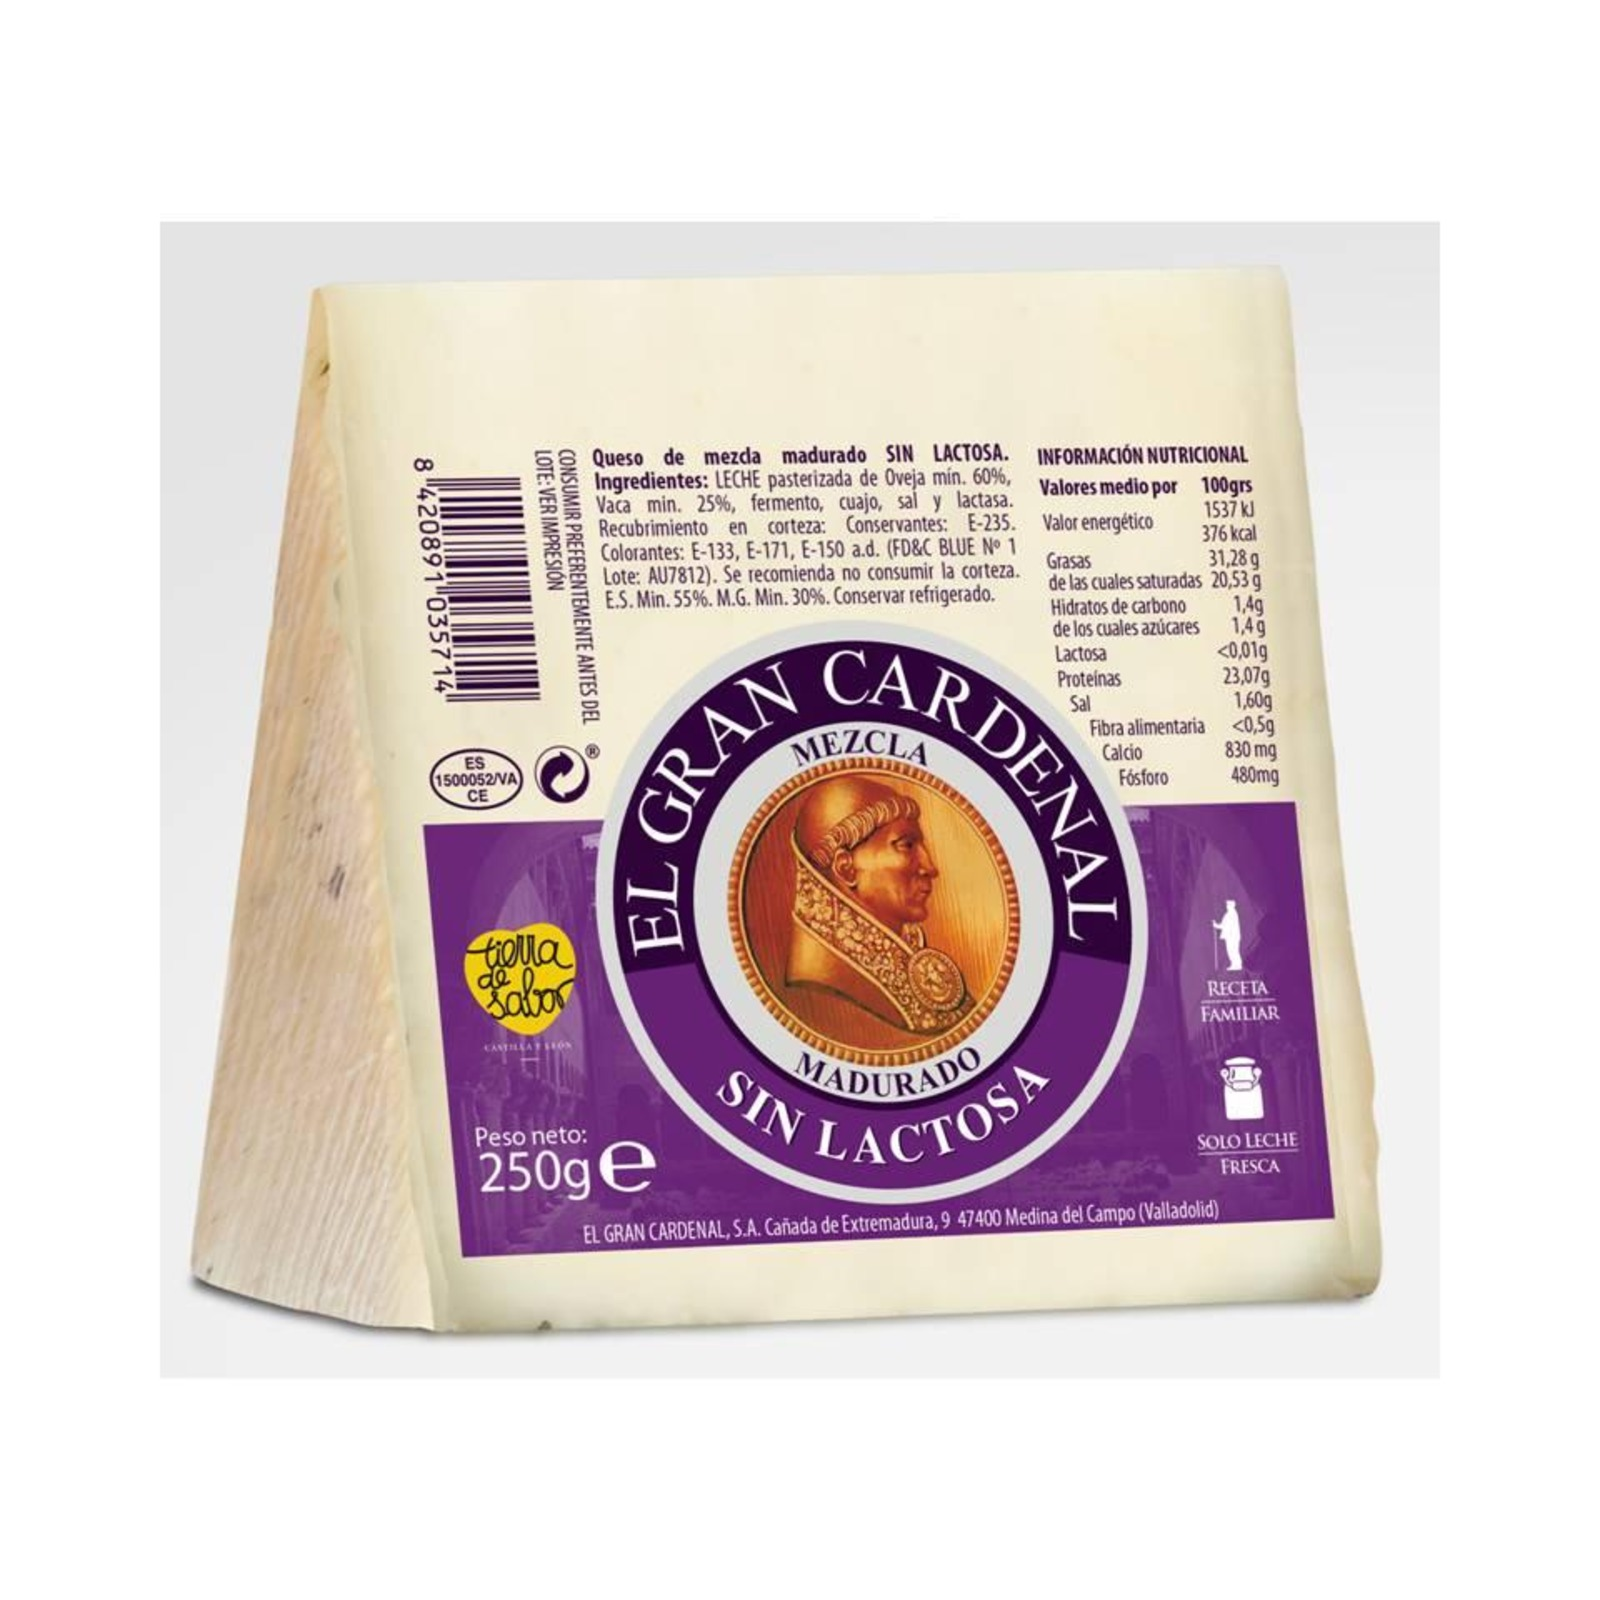 El Gran Cardenal Lactose free Spanish Cheese (blended milk)